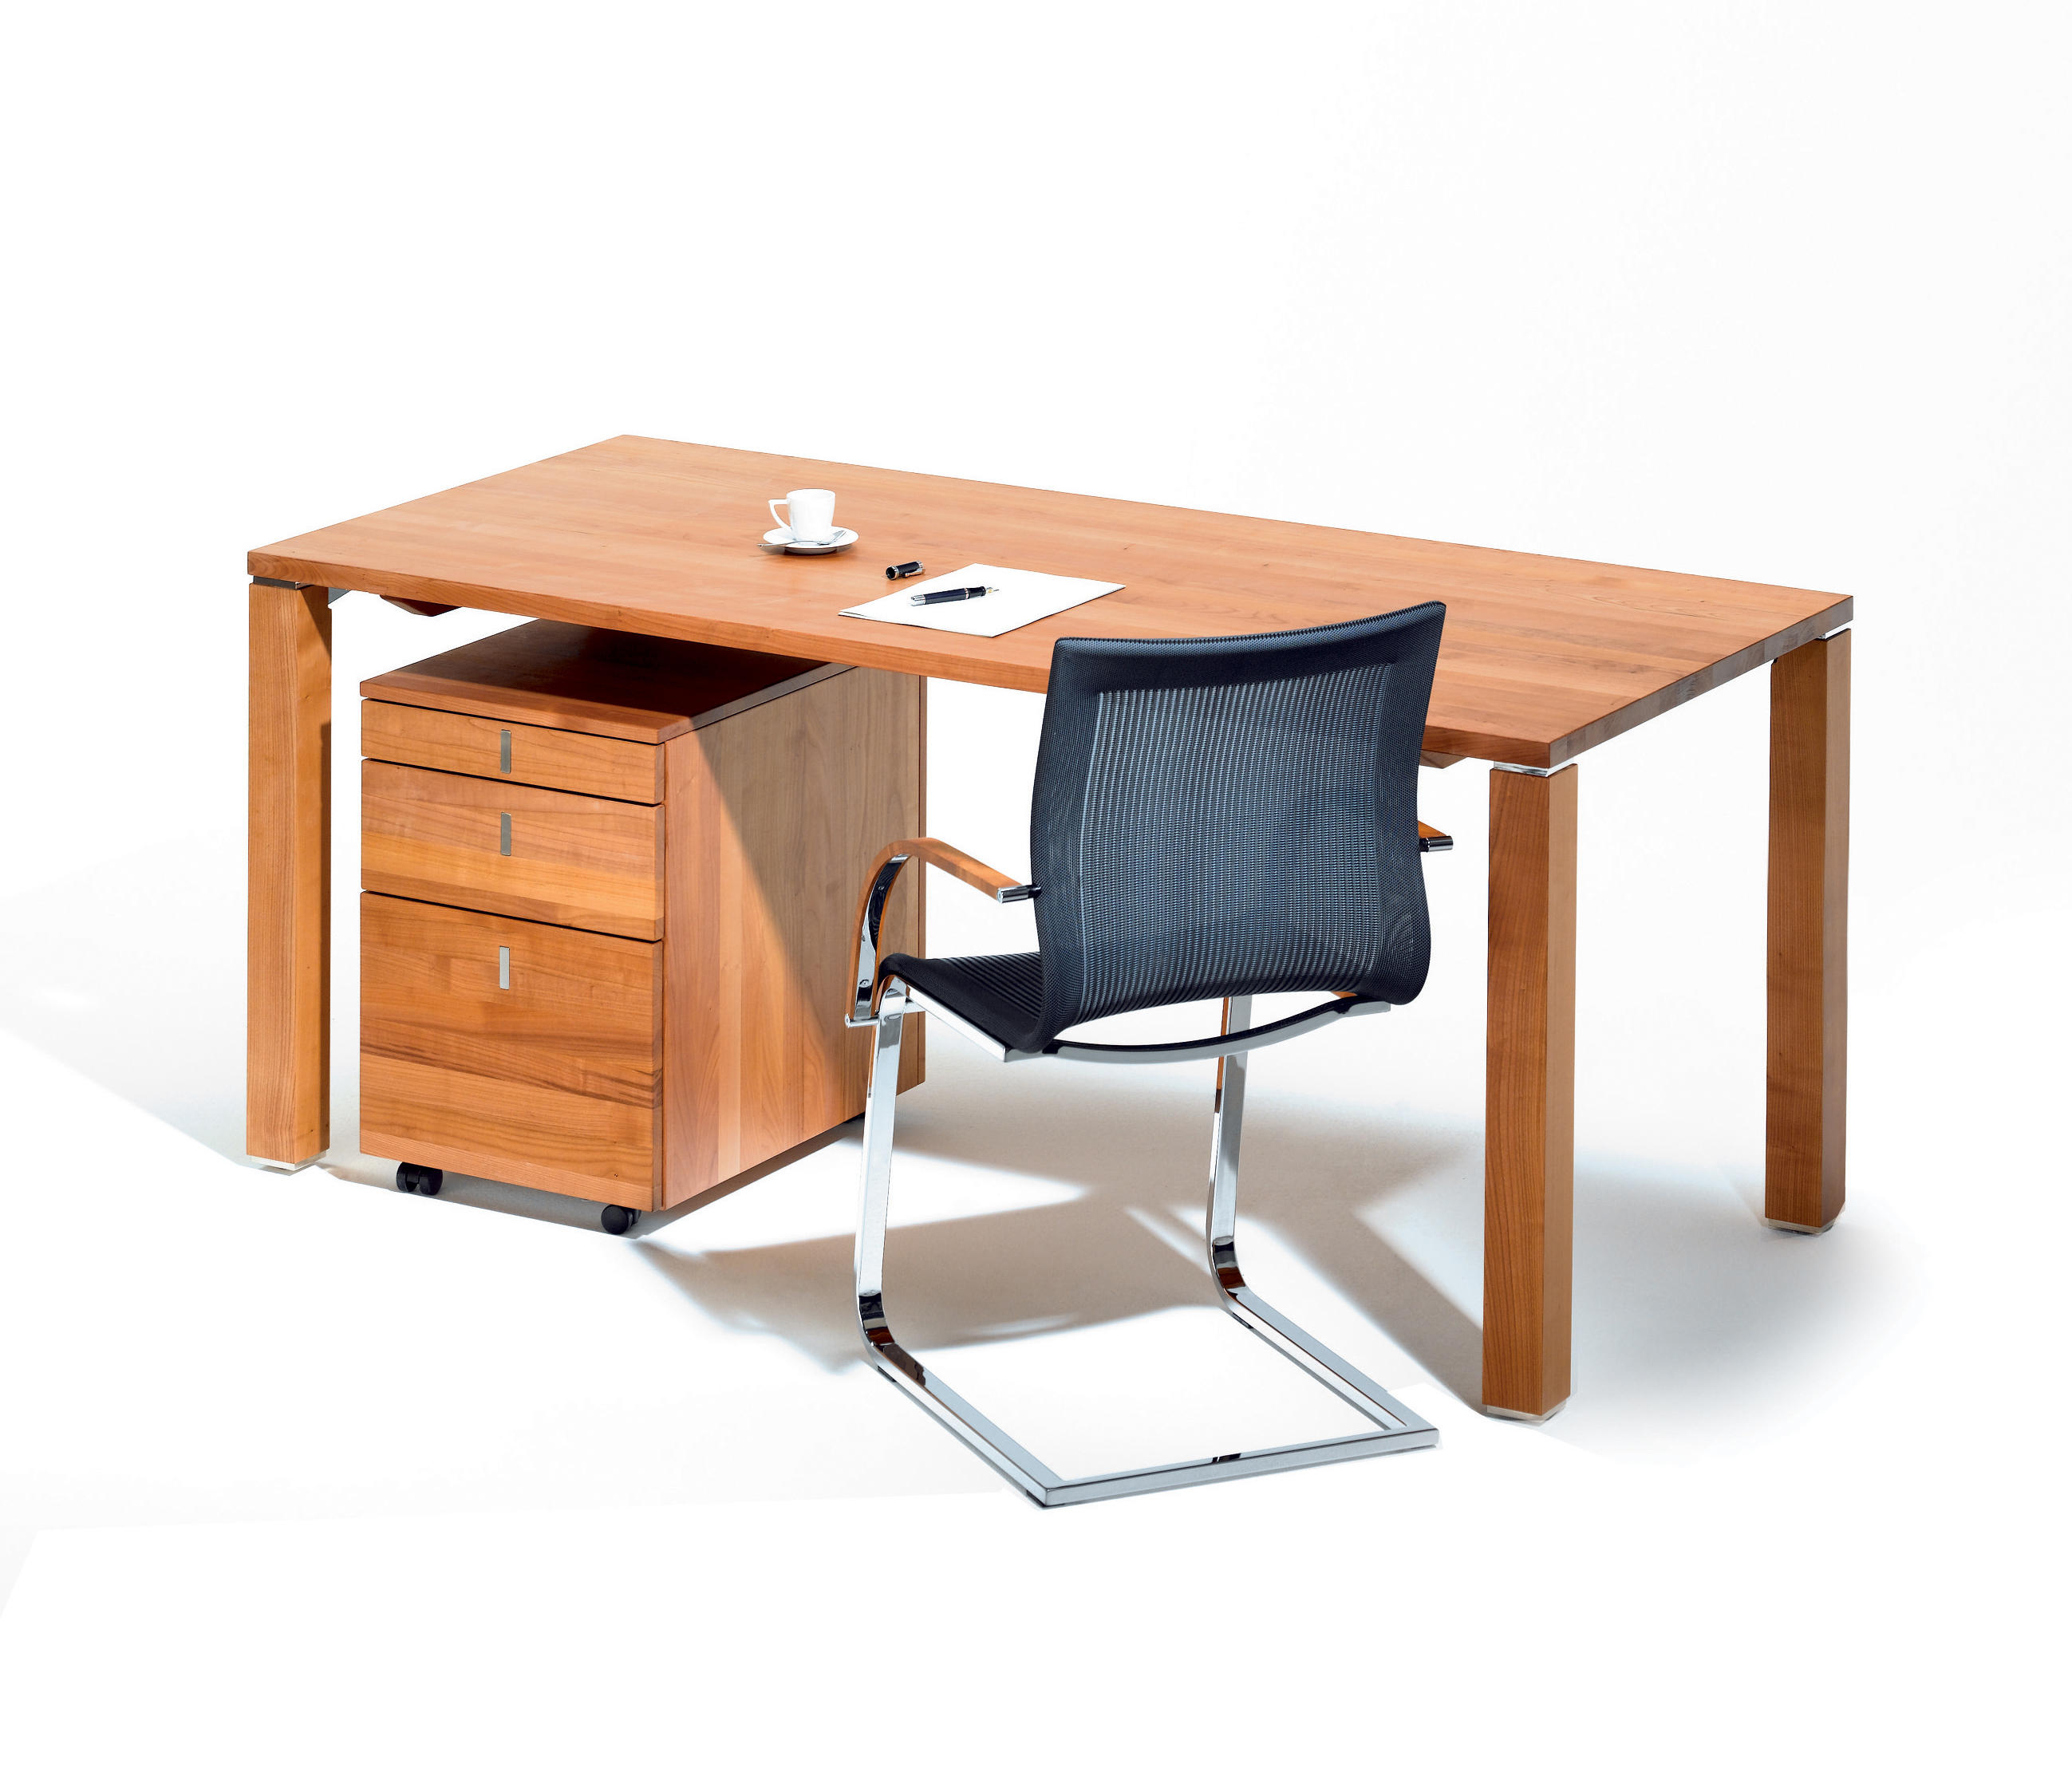 Team 7 Cubus cubus desk desks from team 7 architonic